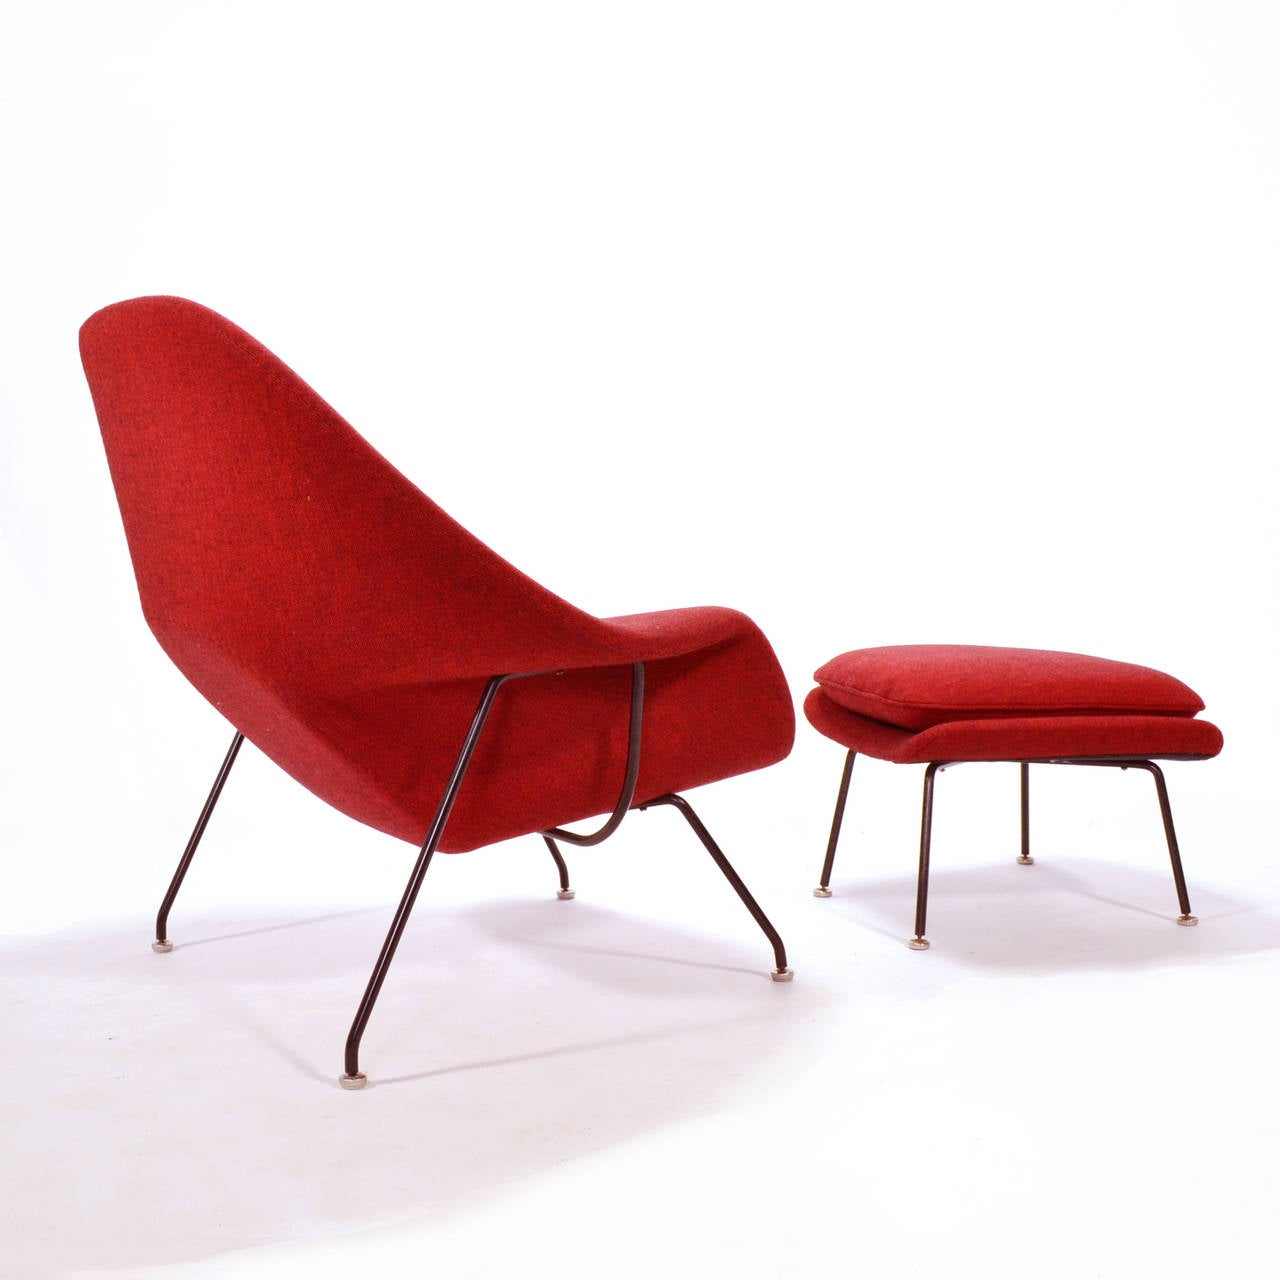 eero saarinen womb chair and ottoman upholstered in alexander girard fabric at 1stdibs. Black Bedroom Furniture Sets. Home Design Ideas